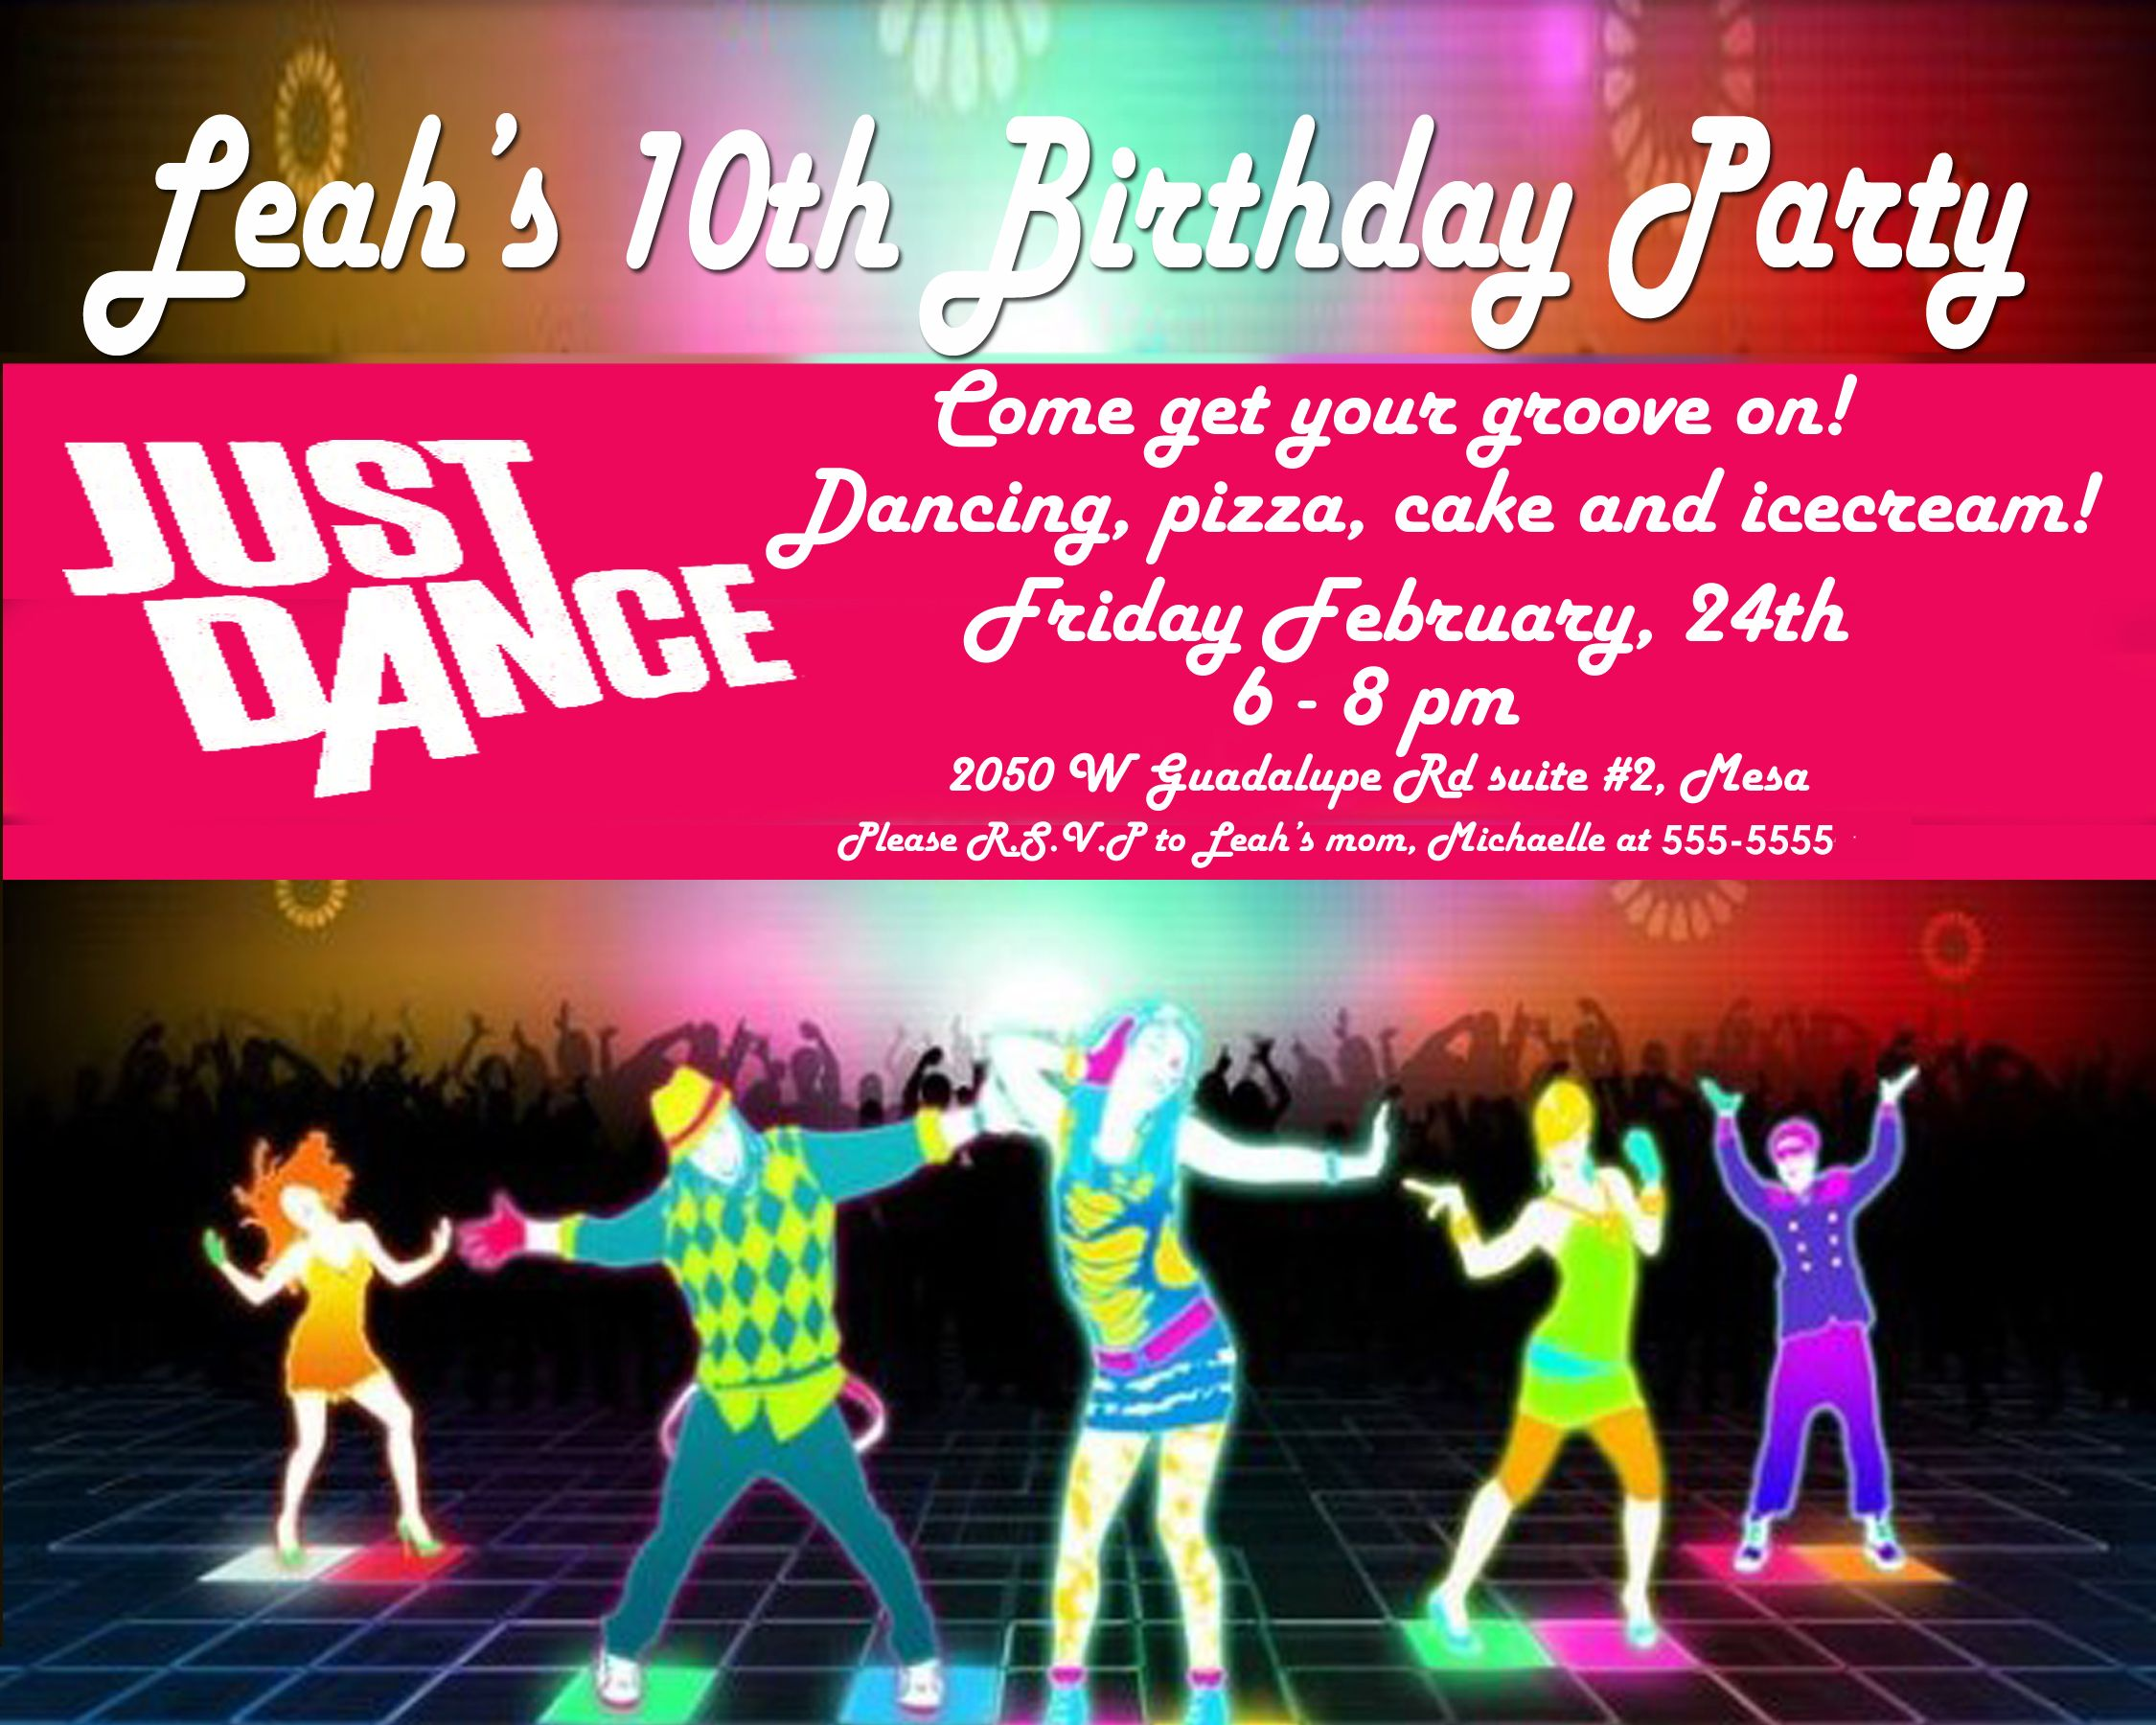 just dance party invite    we had a projector set up with